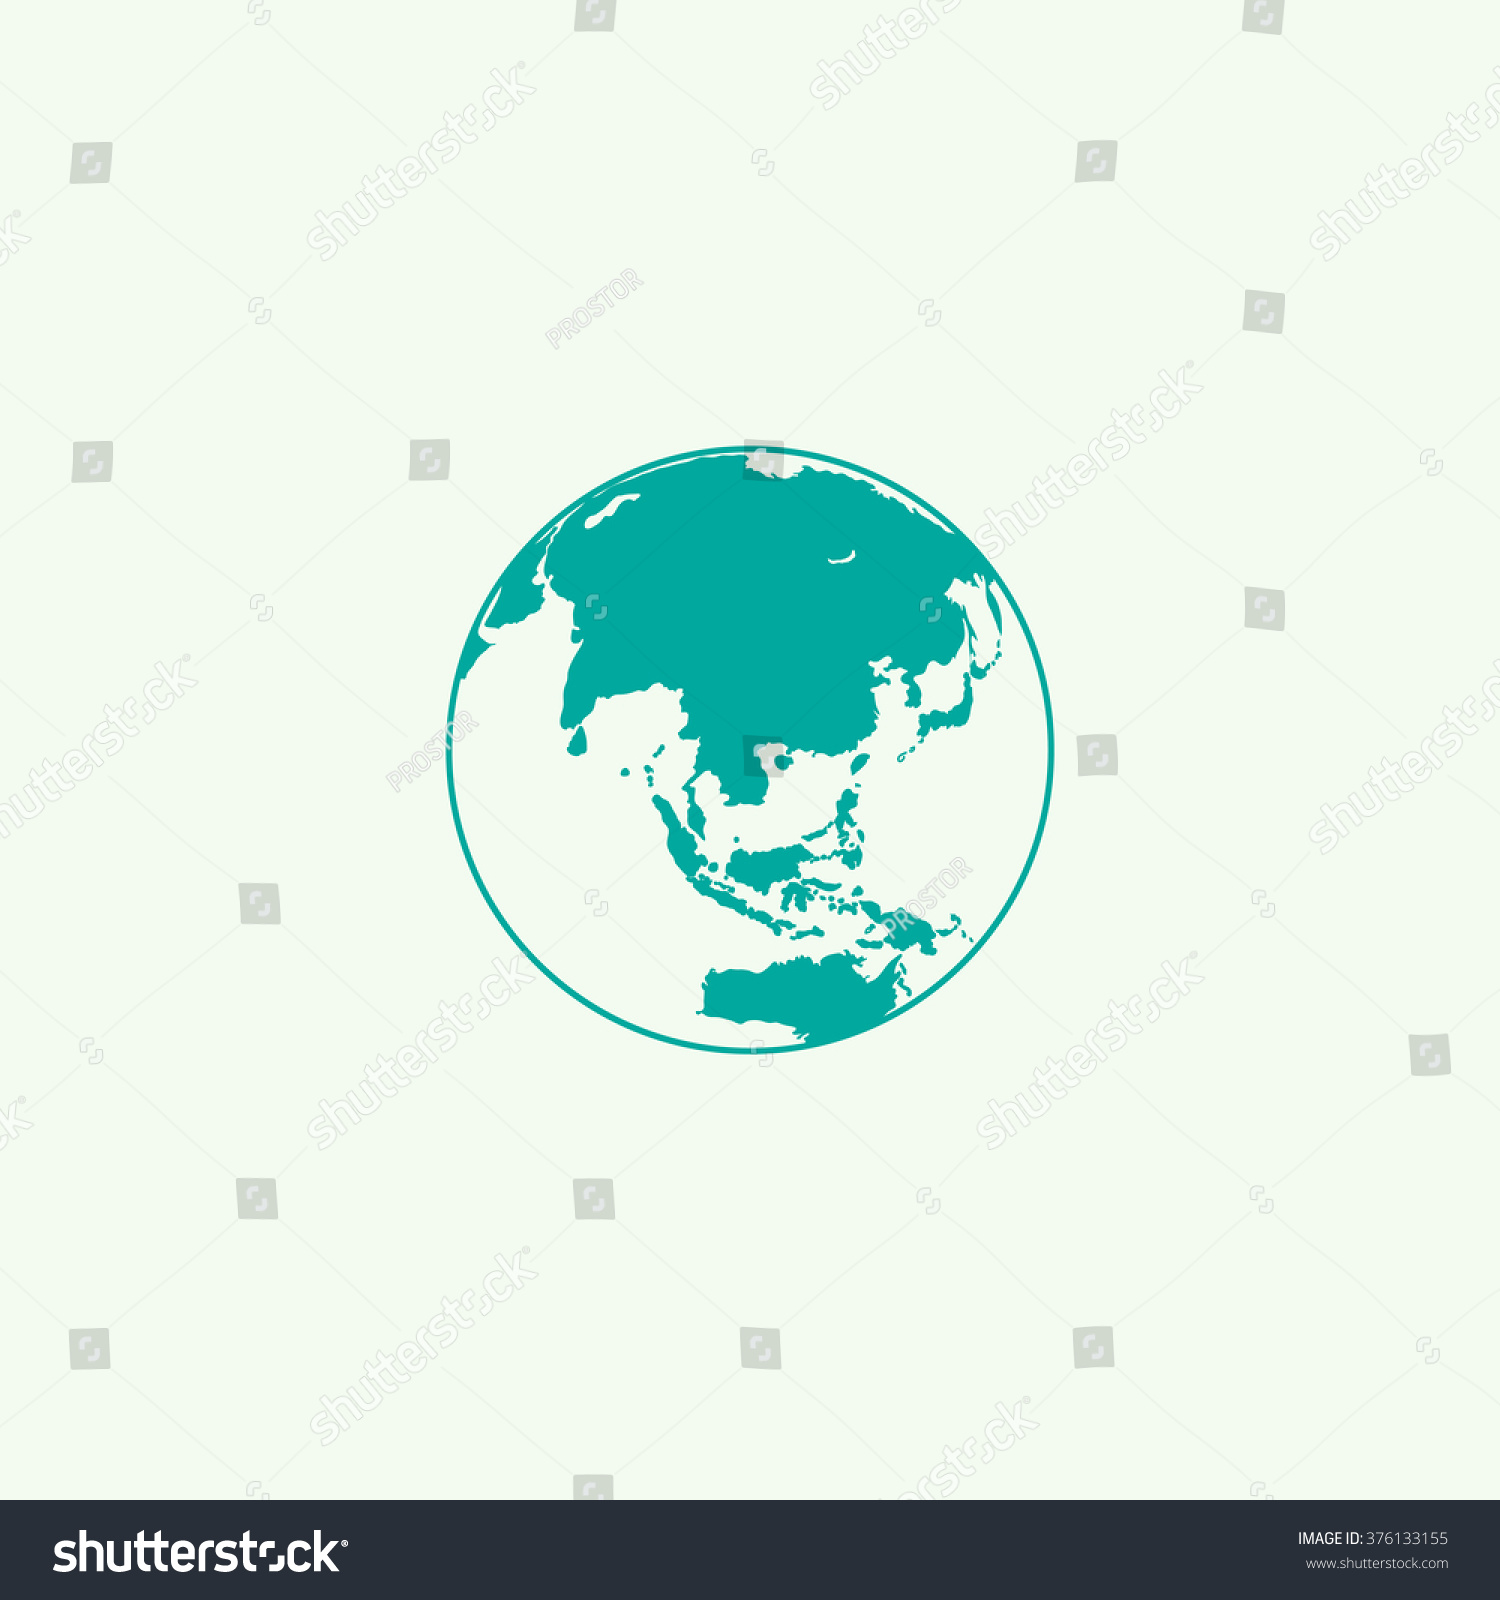 The globe icon Globe symbol Flat Vector illustration